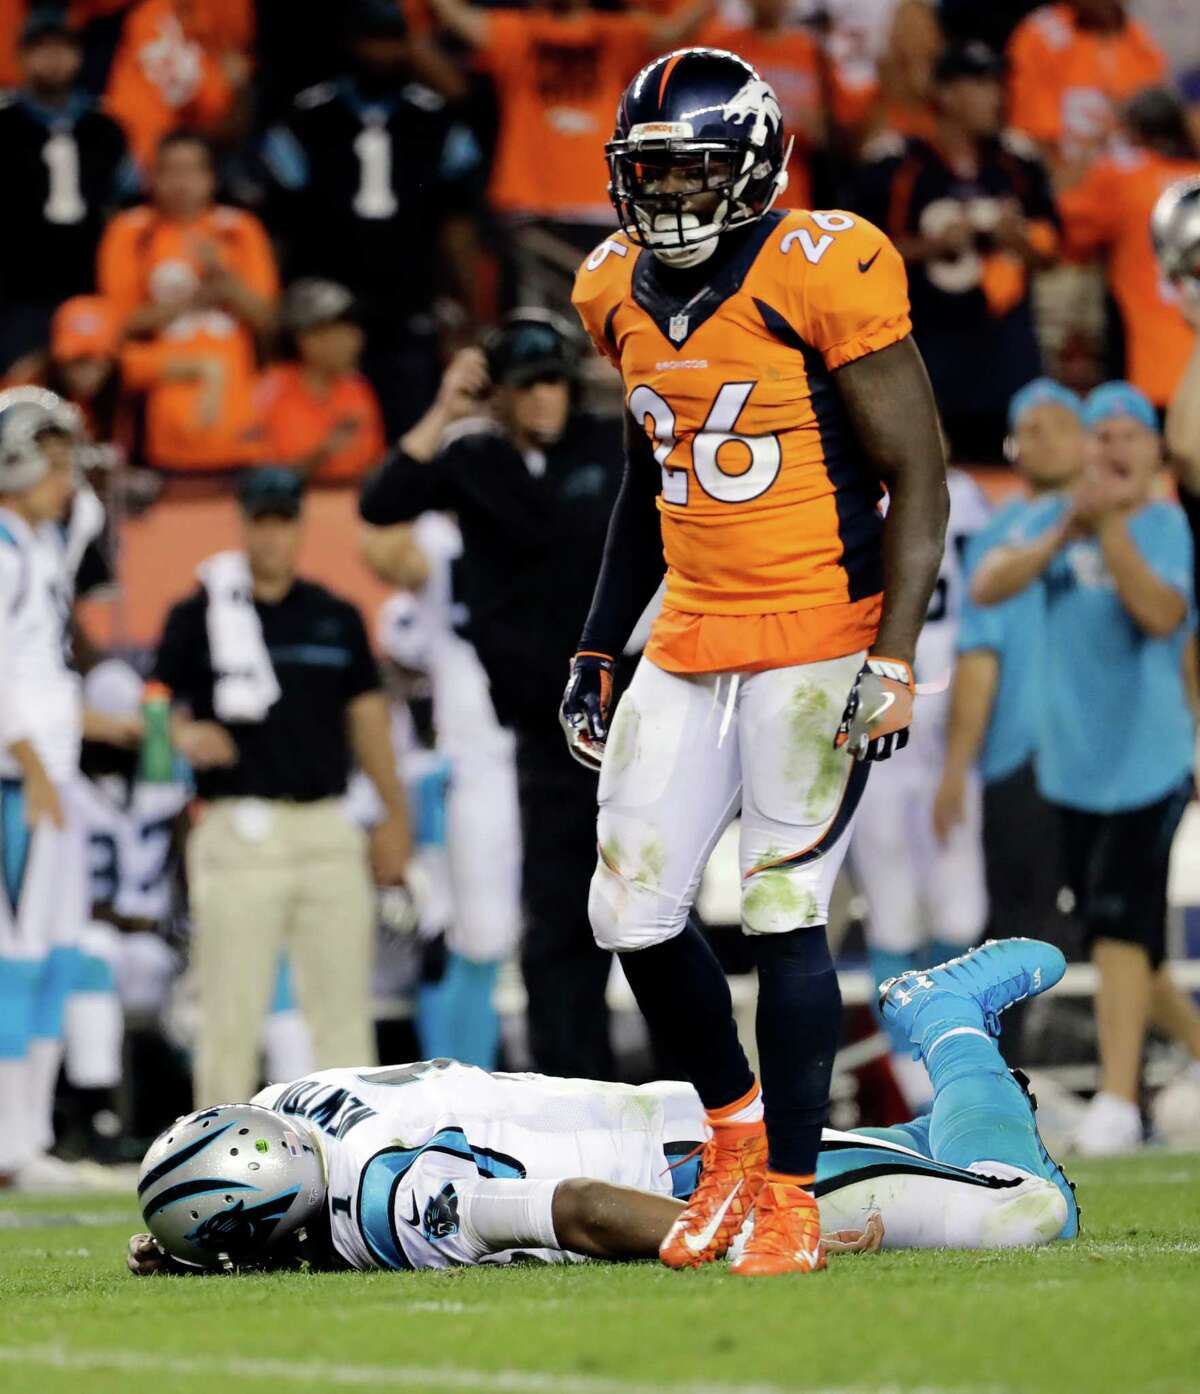 FILE - In this Sept. 8, 2016, file photo, Carolina Panthers quarterback Cam Newton (1) lies on the turf after a roughing the passer penalty was called on Denver Broncos free safety Darian Stewart (26) during the second half of an NFL football game in Denver. s some Broncos players prepare to face the financial consequences of their helmet-to-helmet hits on Cam Newton, they insist they're not a dirty defense, although they don't really mind if that's their reputation. (AP Photo/Joe Mahoney, File) ORG XMIT: NY182